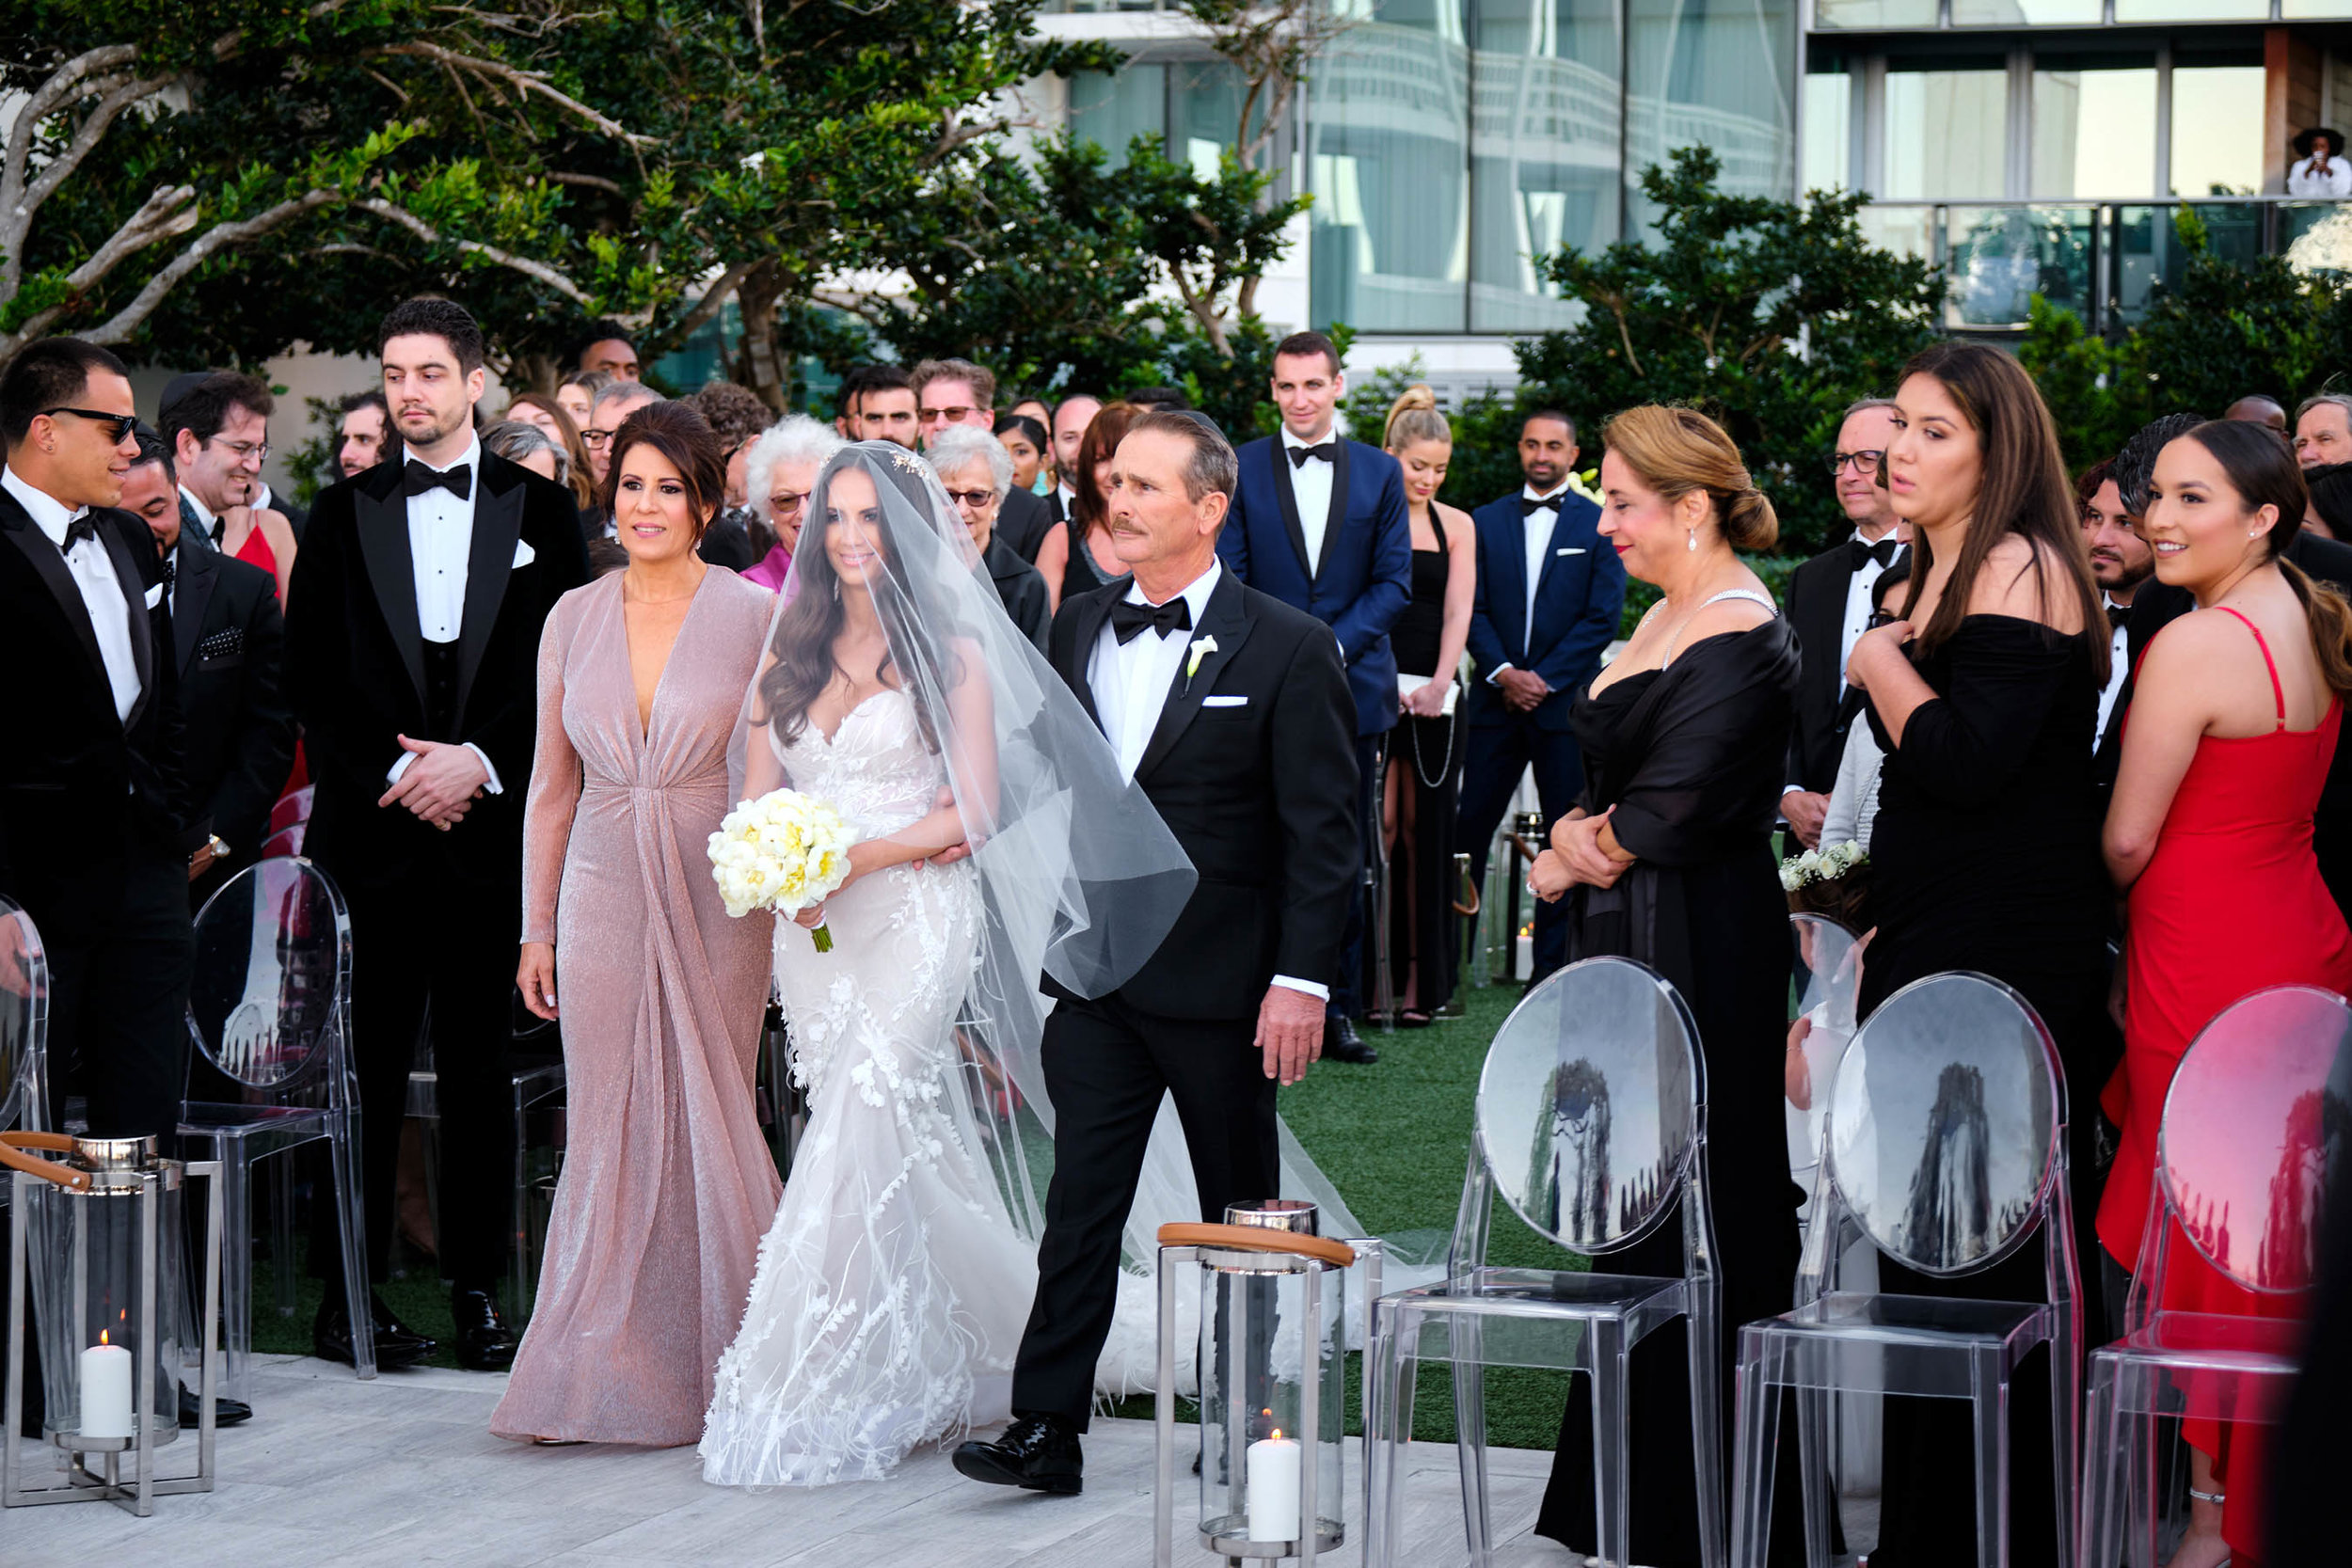 nonesuch_nyc_wedding_photographers_the_edition_miami_wedding_0128.jpg